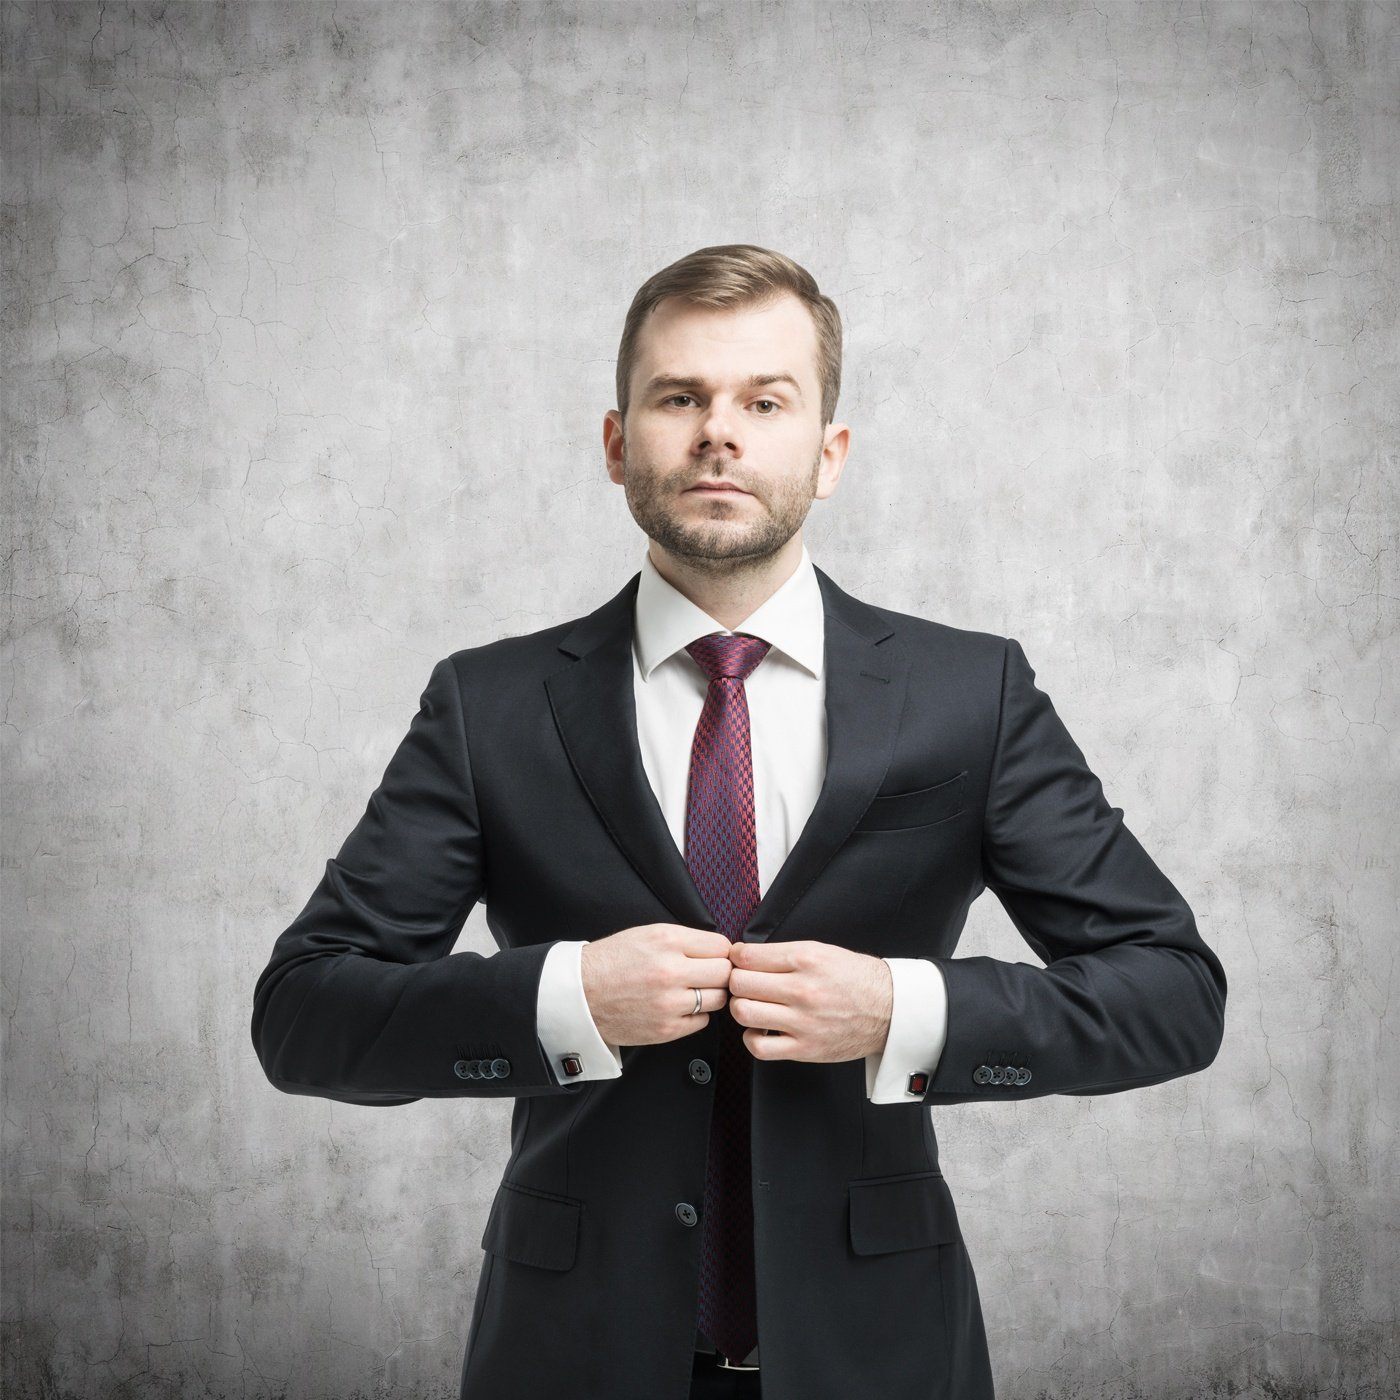 Businessman-standing-in-front-of-the-concrete-wall.jpg